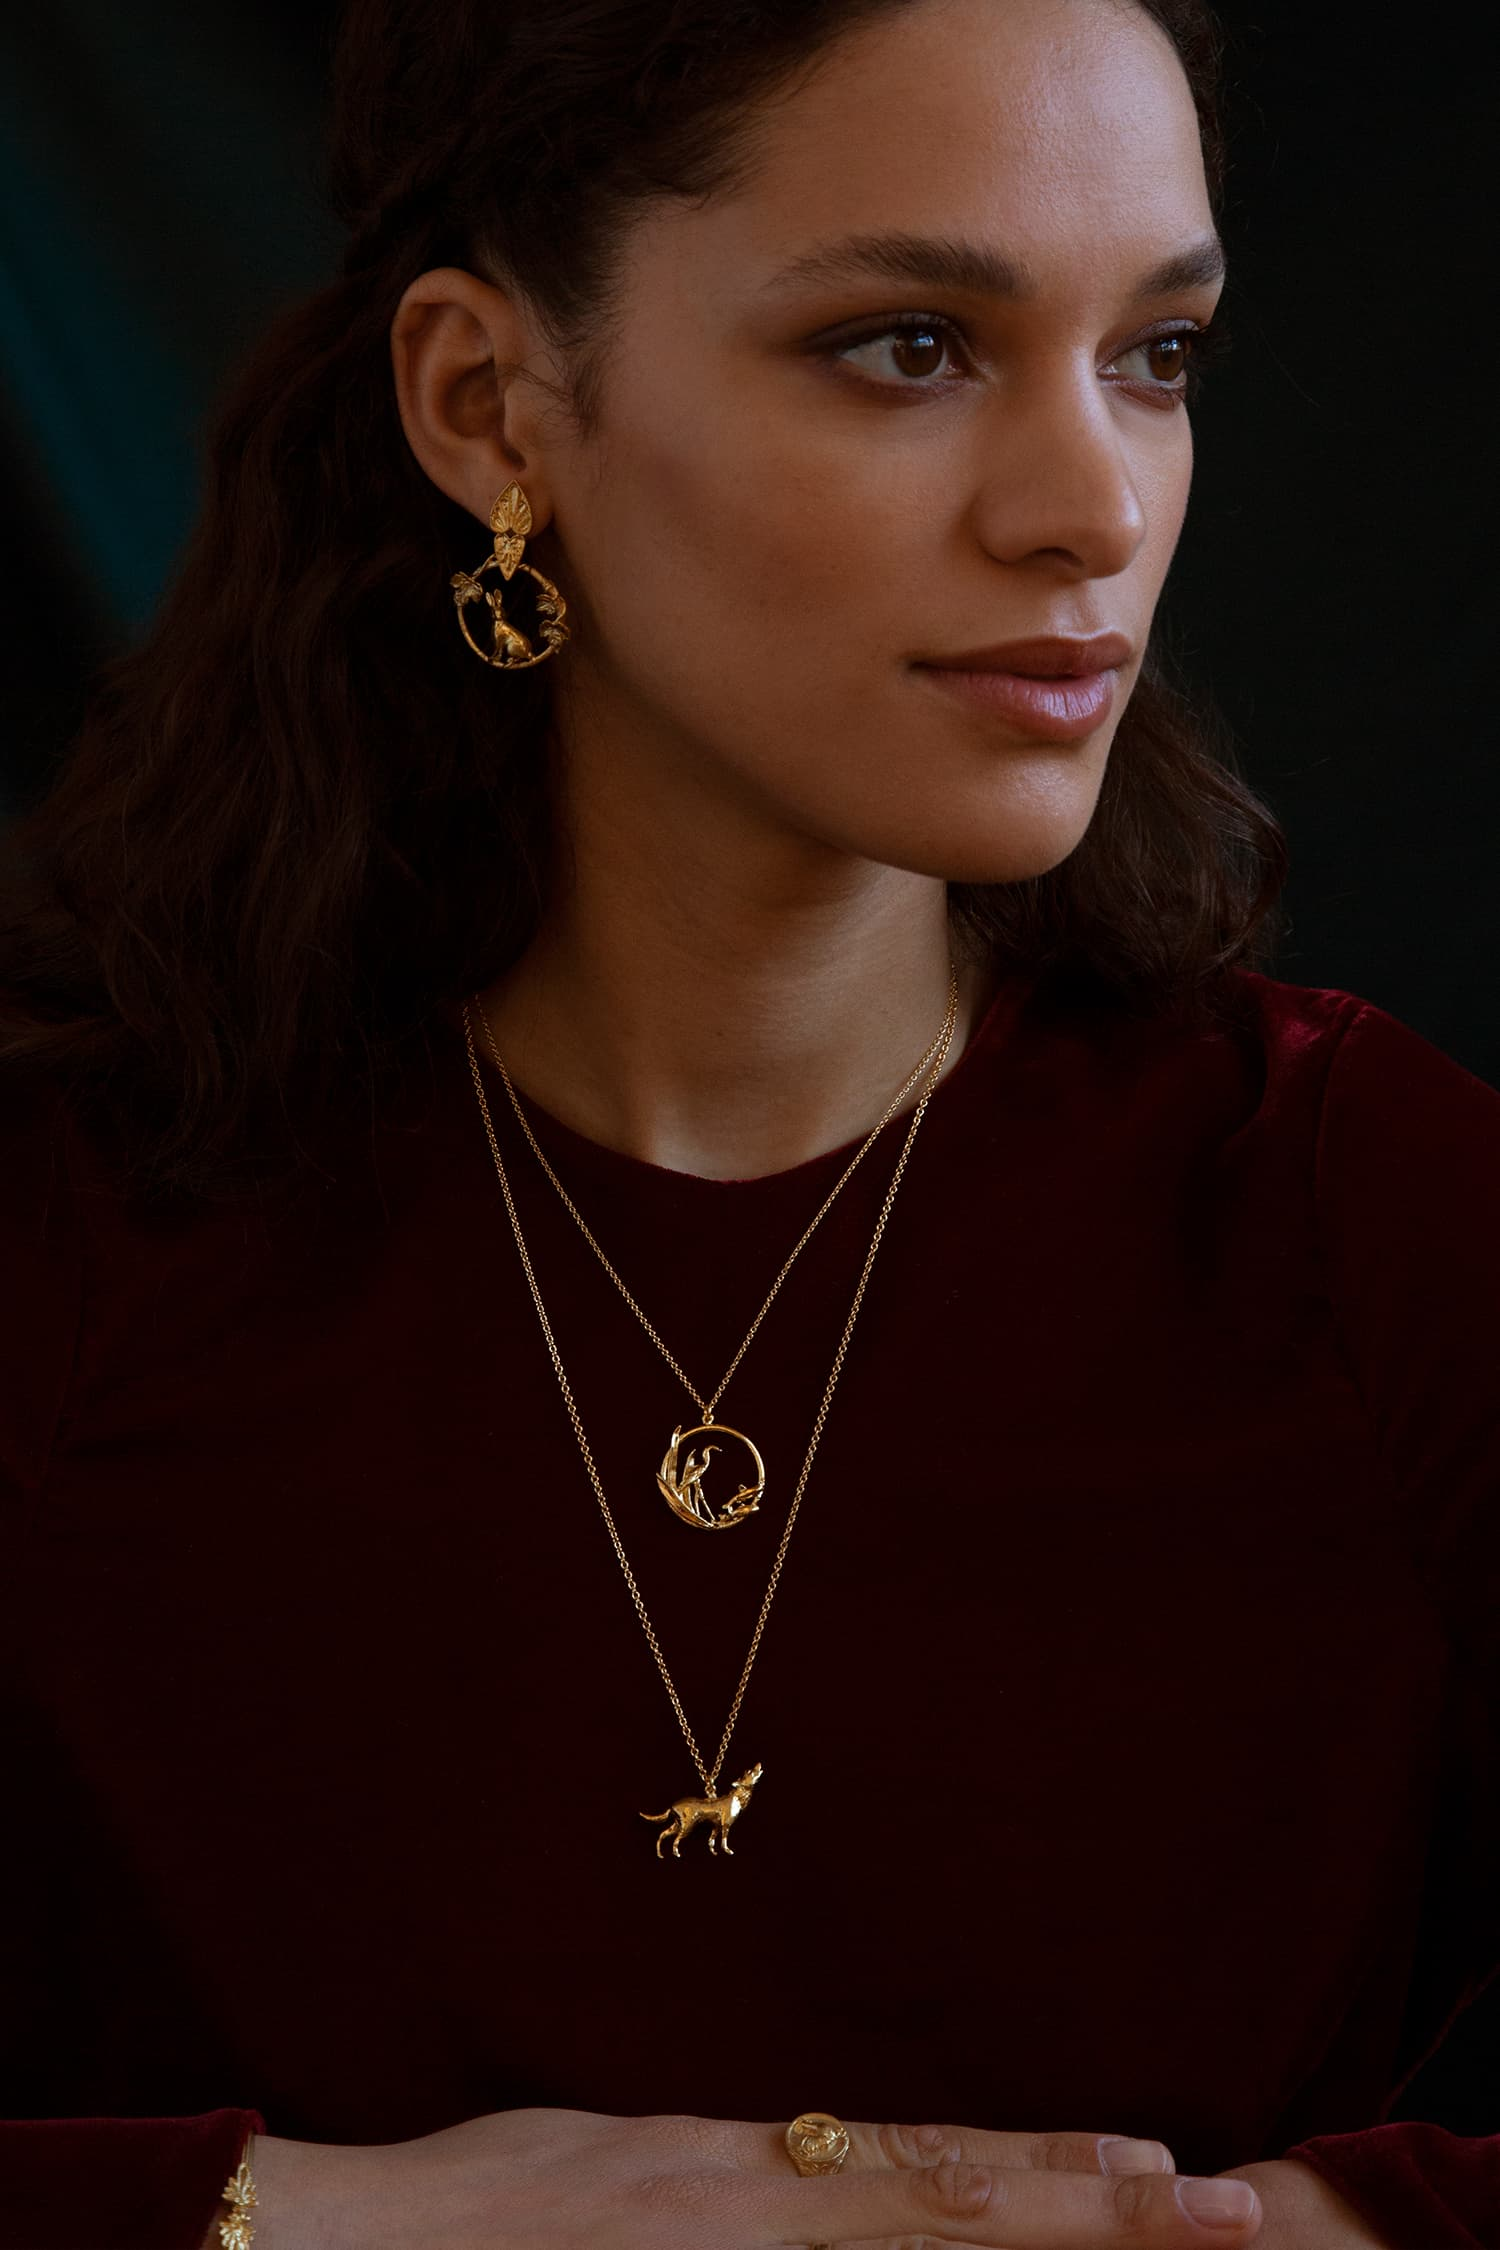 Model wears Fables Wolf and Heron necklace and Hare and Tortoise earrings